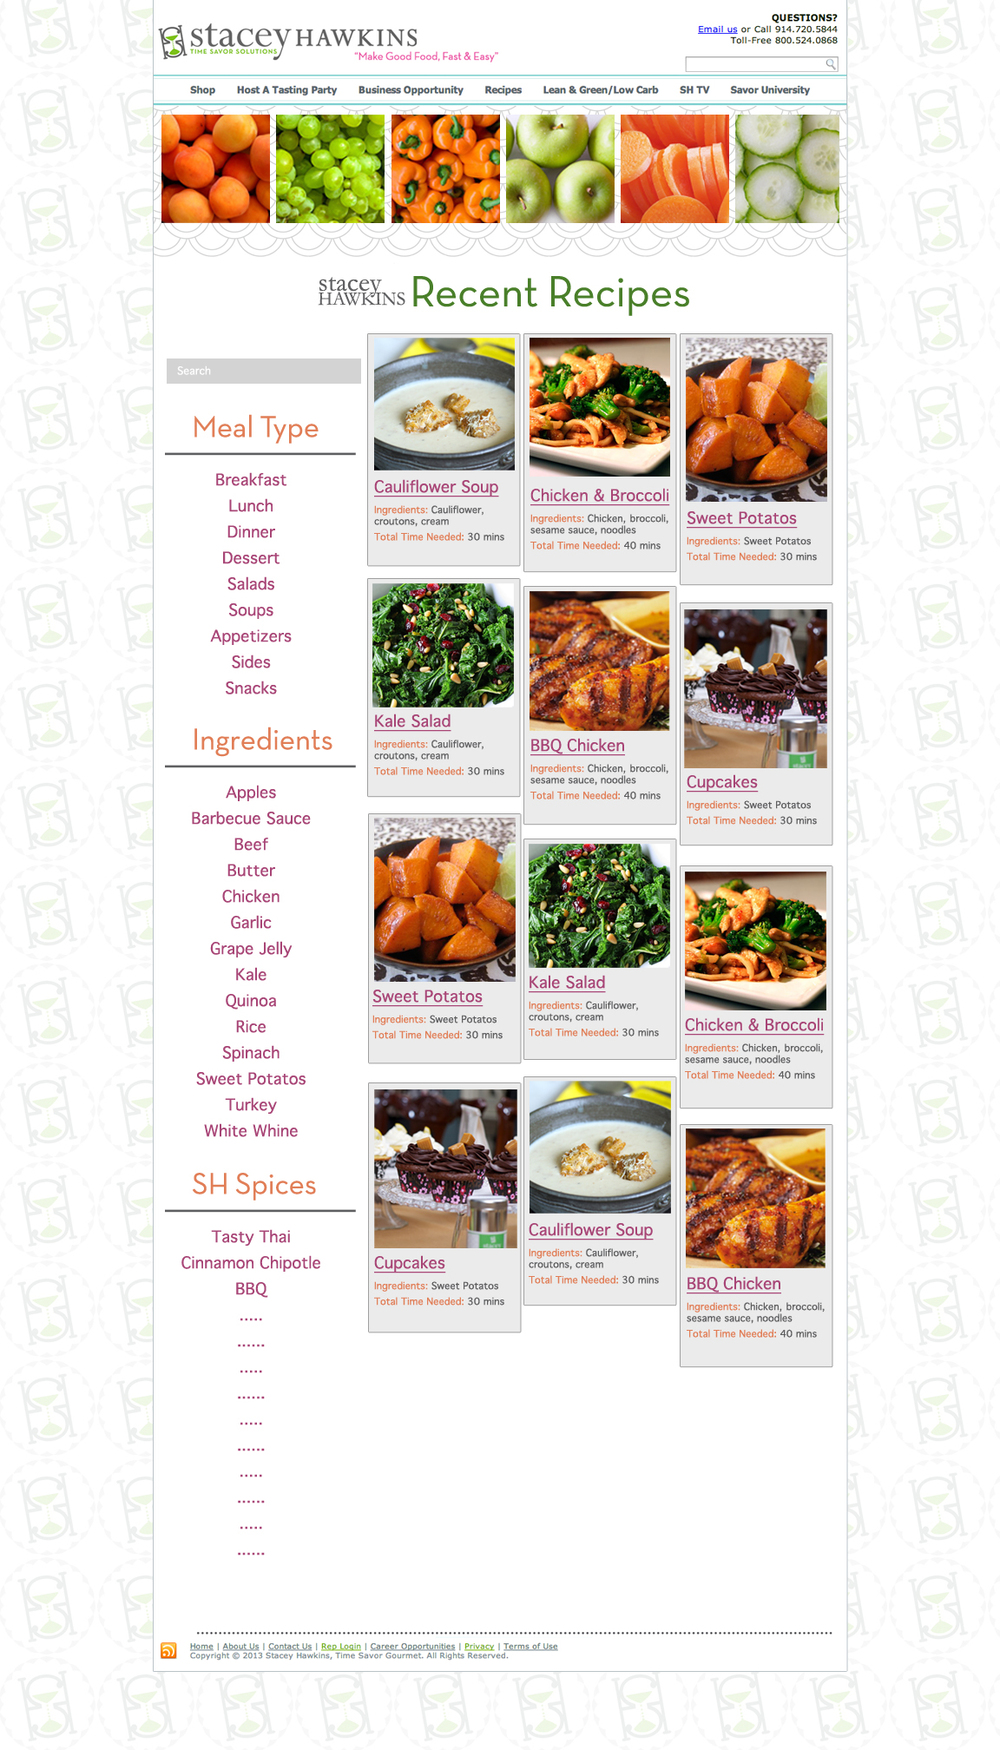 Recent Recipes archive for a food/spice company that posts recipes.